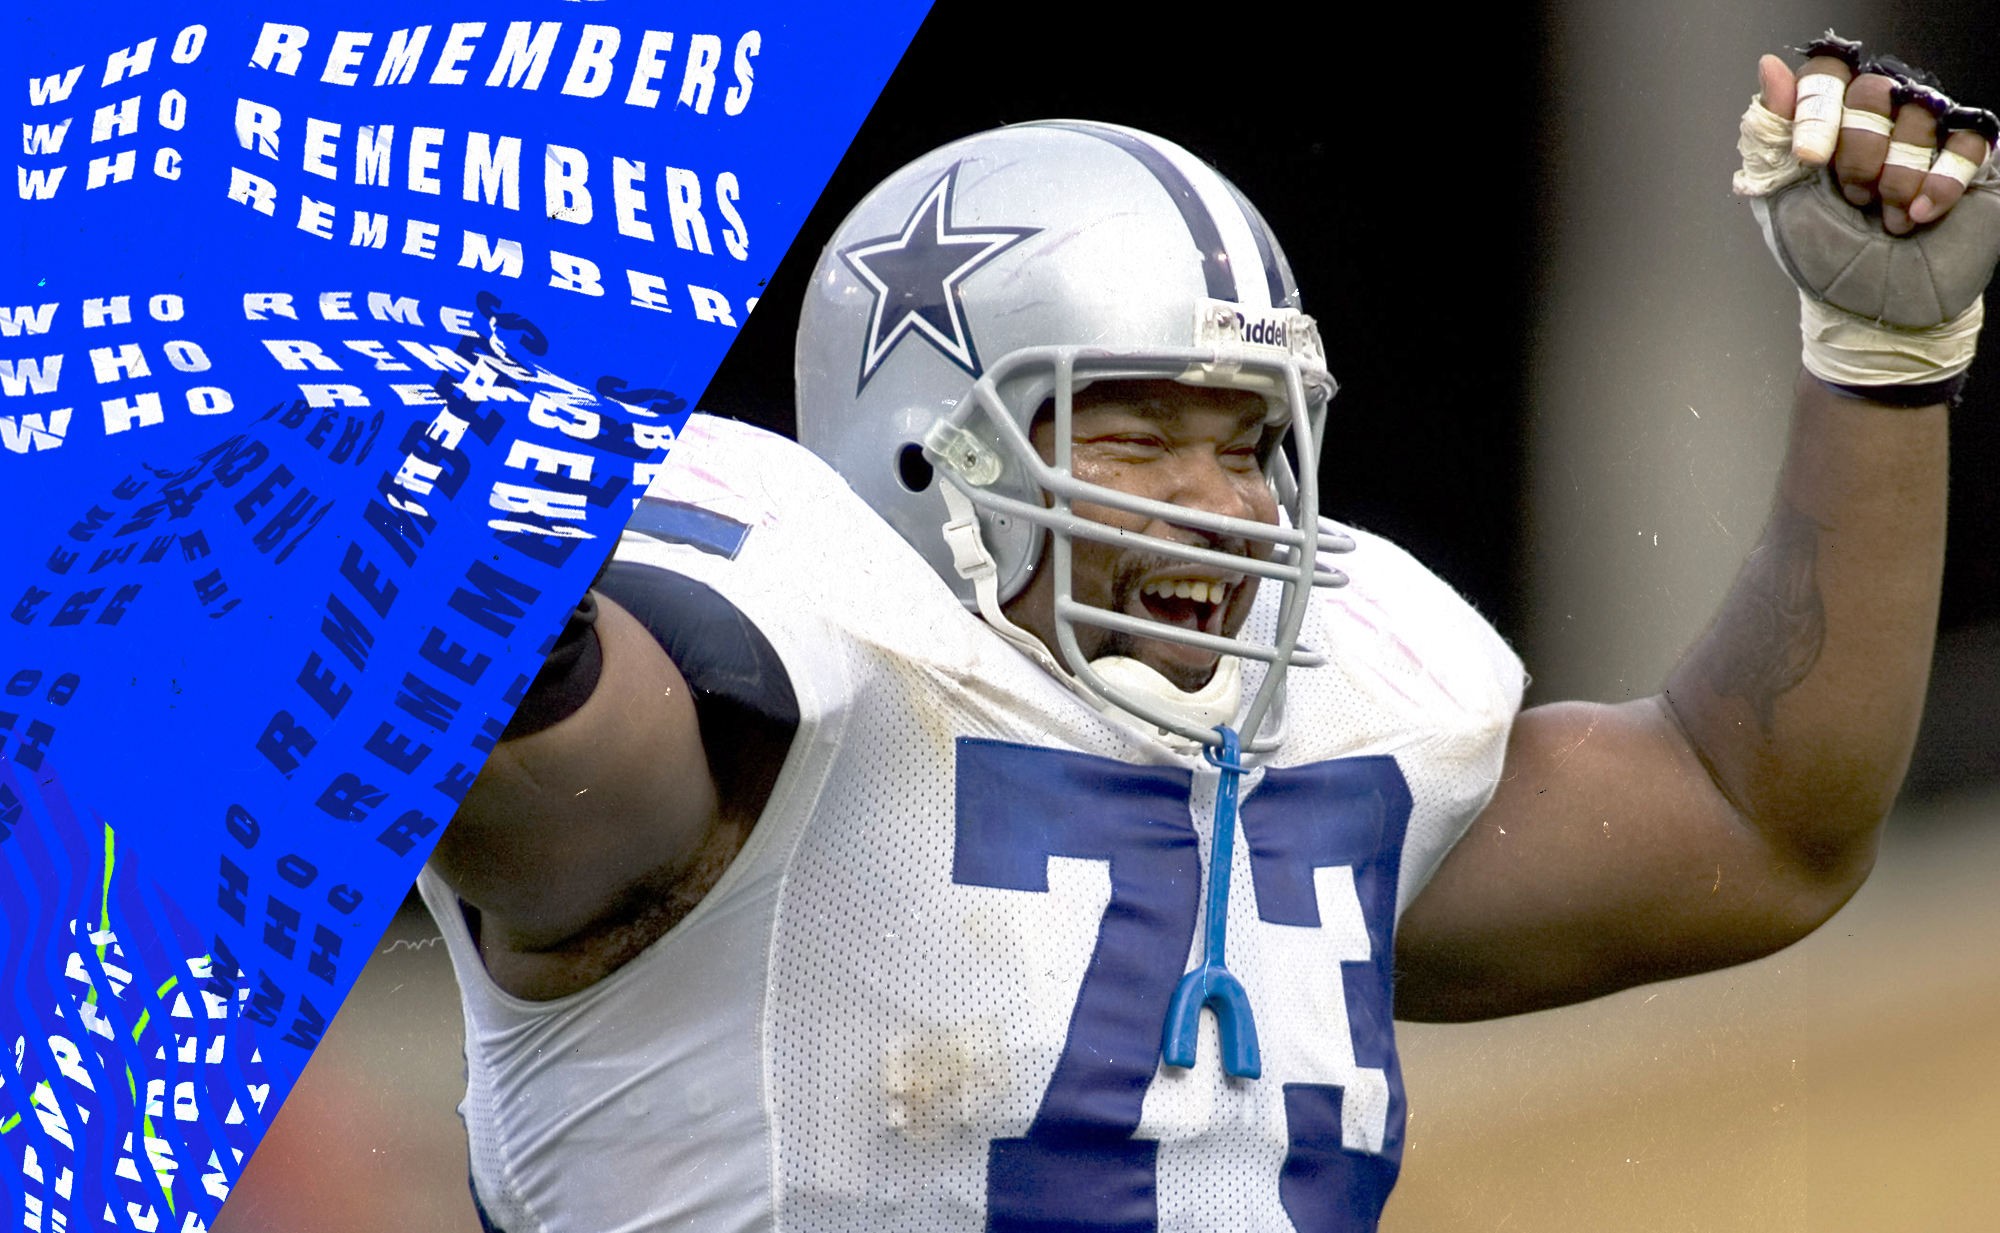 I *wish* I could remember when 325-pound Larry Allen stopped a pick-six from happening